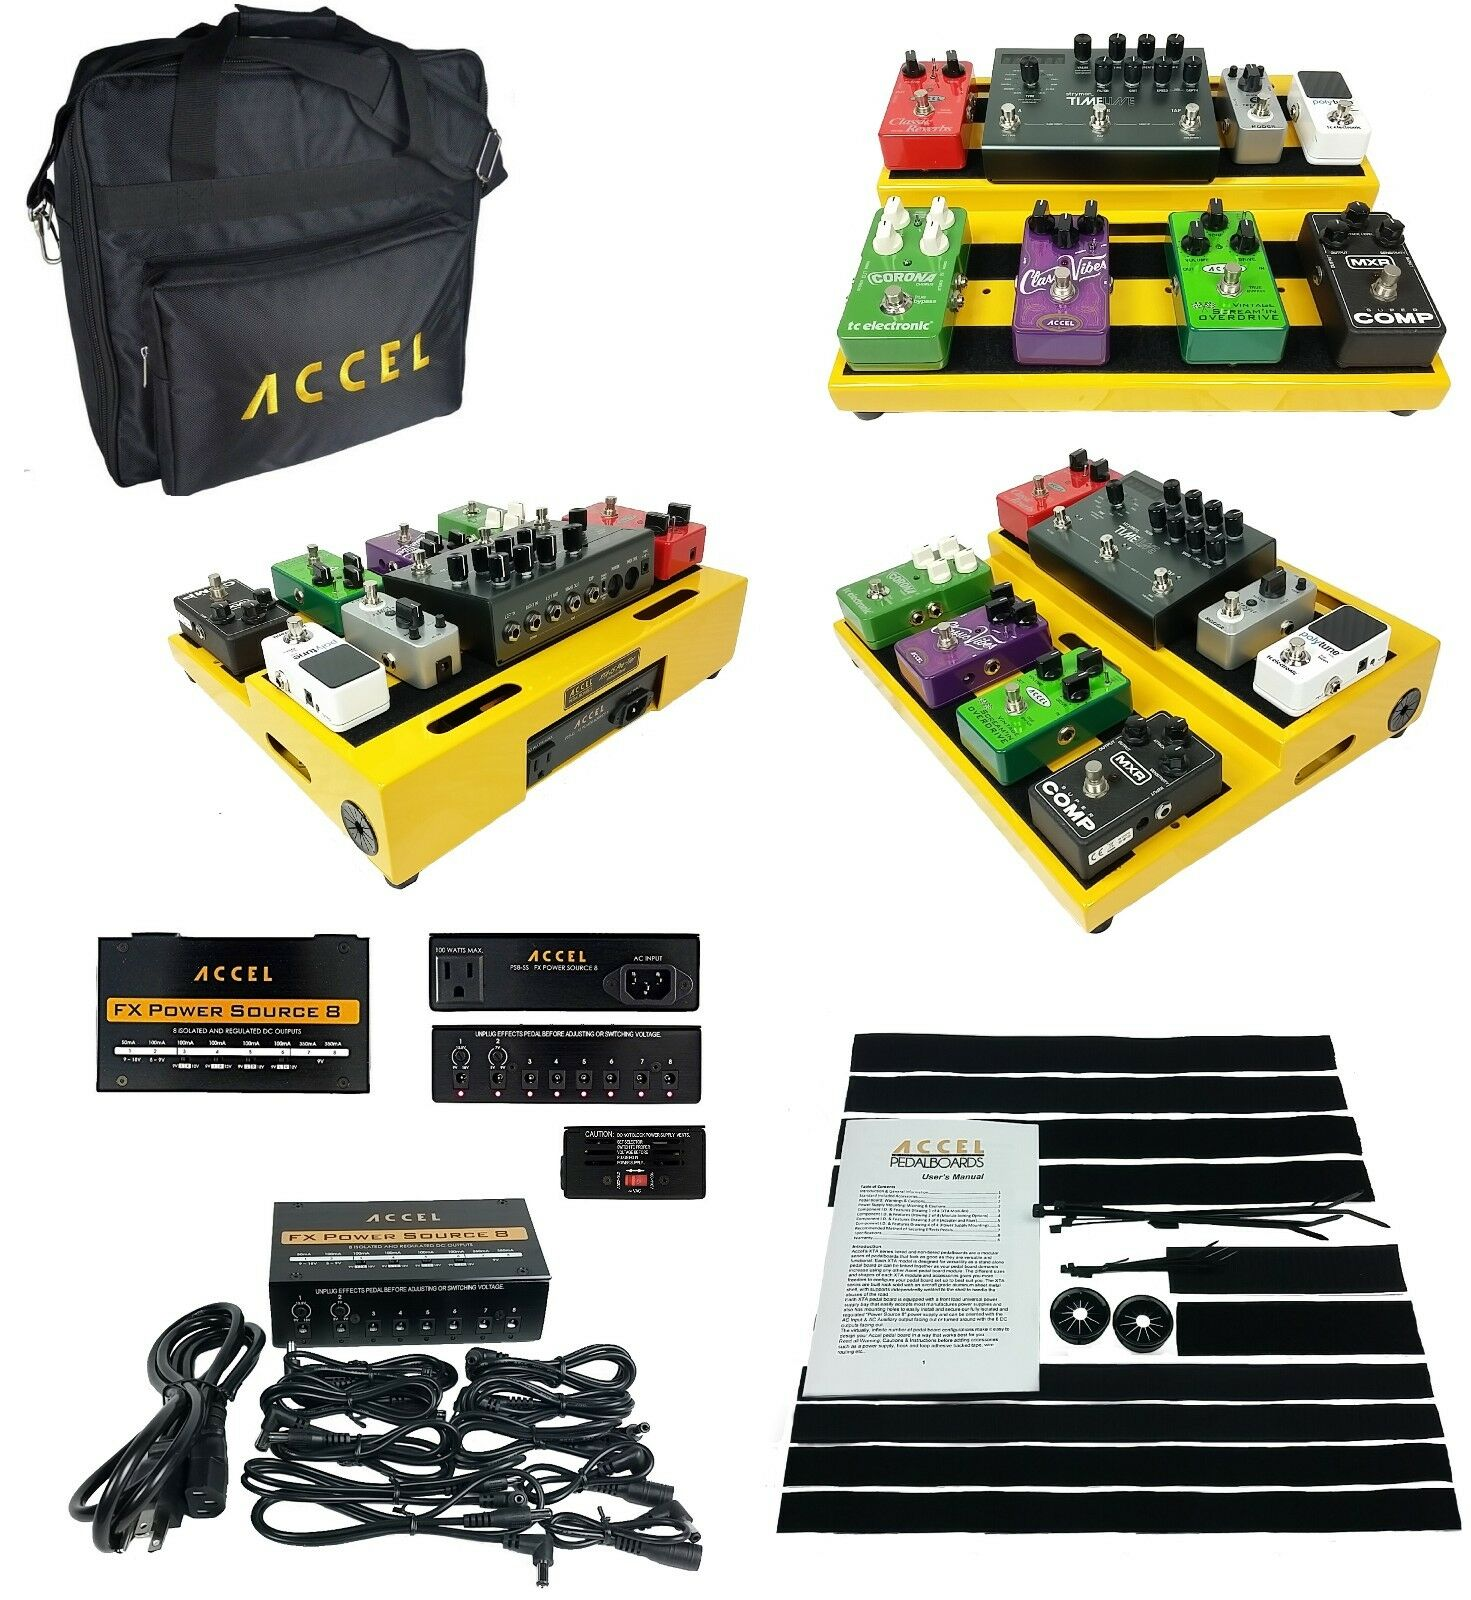 Accel XTA15 Guitar Pedal board (Gelb), FX Power Source 8 & Tote